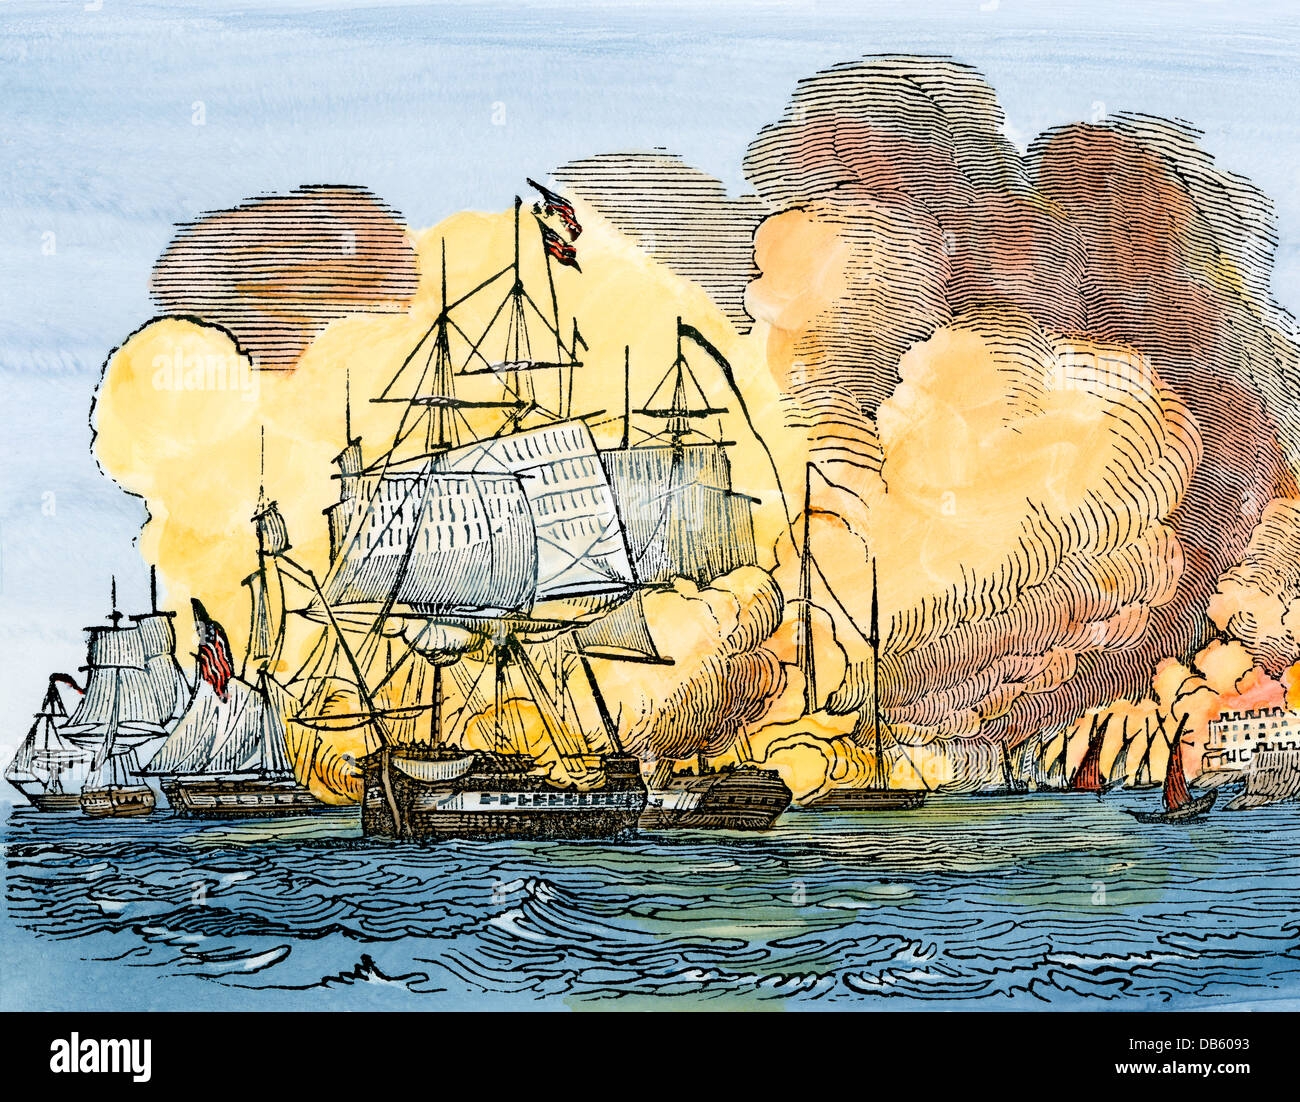 Bombardment of Tripoli by US Navy ships during the Barbary Wars, 1803. Hand-colored woodcut - Stock Image